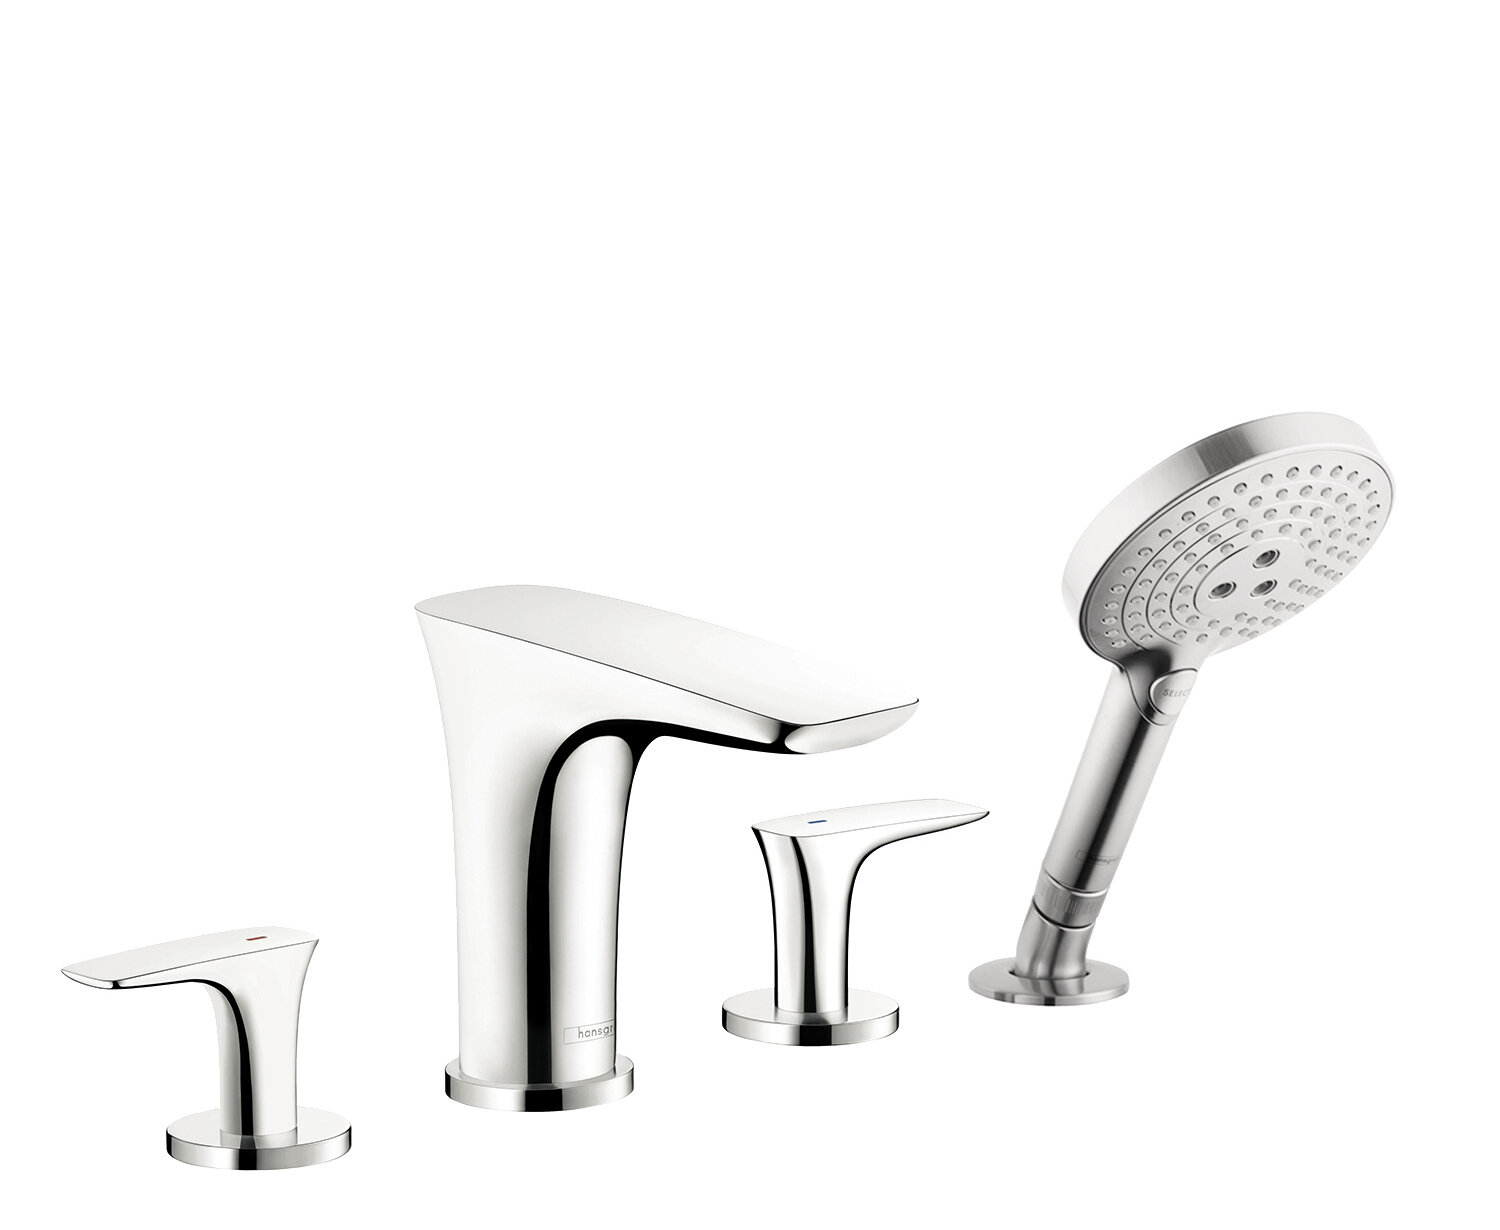 Hansgrohe Puravida Double Handle Deck Mounted Roman Tub Faucet Trim With Diverter And Handshower Wayfair